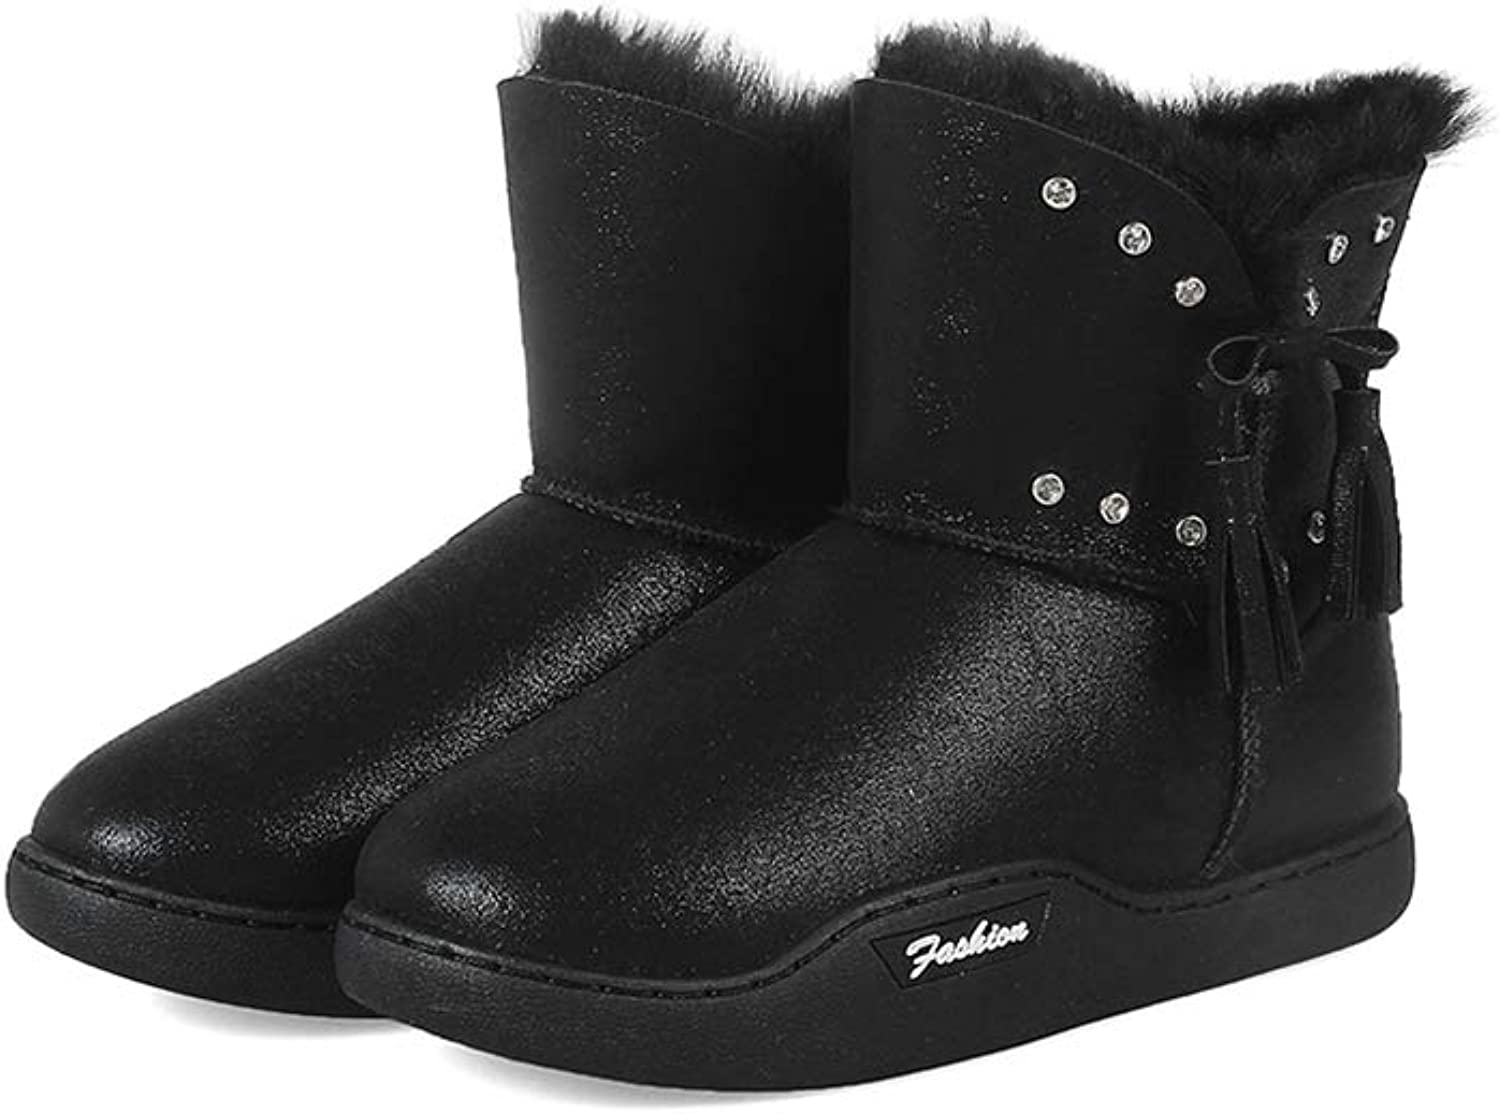 T-JULY Girls Boot Snow Boot shoes Ladies Winter Boots Warm Fur Ankle Boots Women Winter shoes